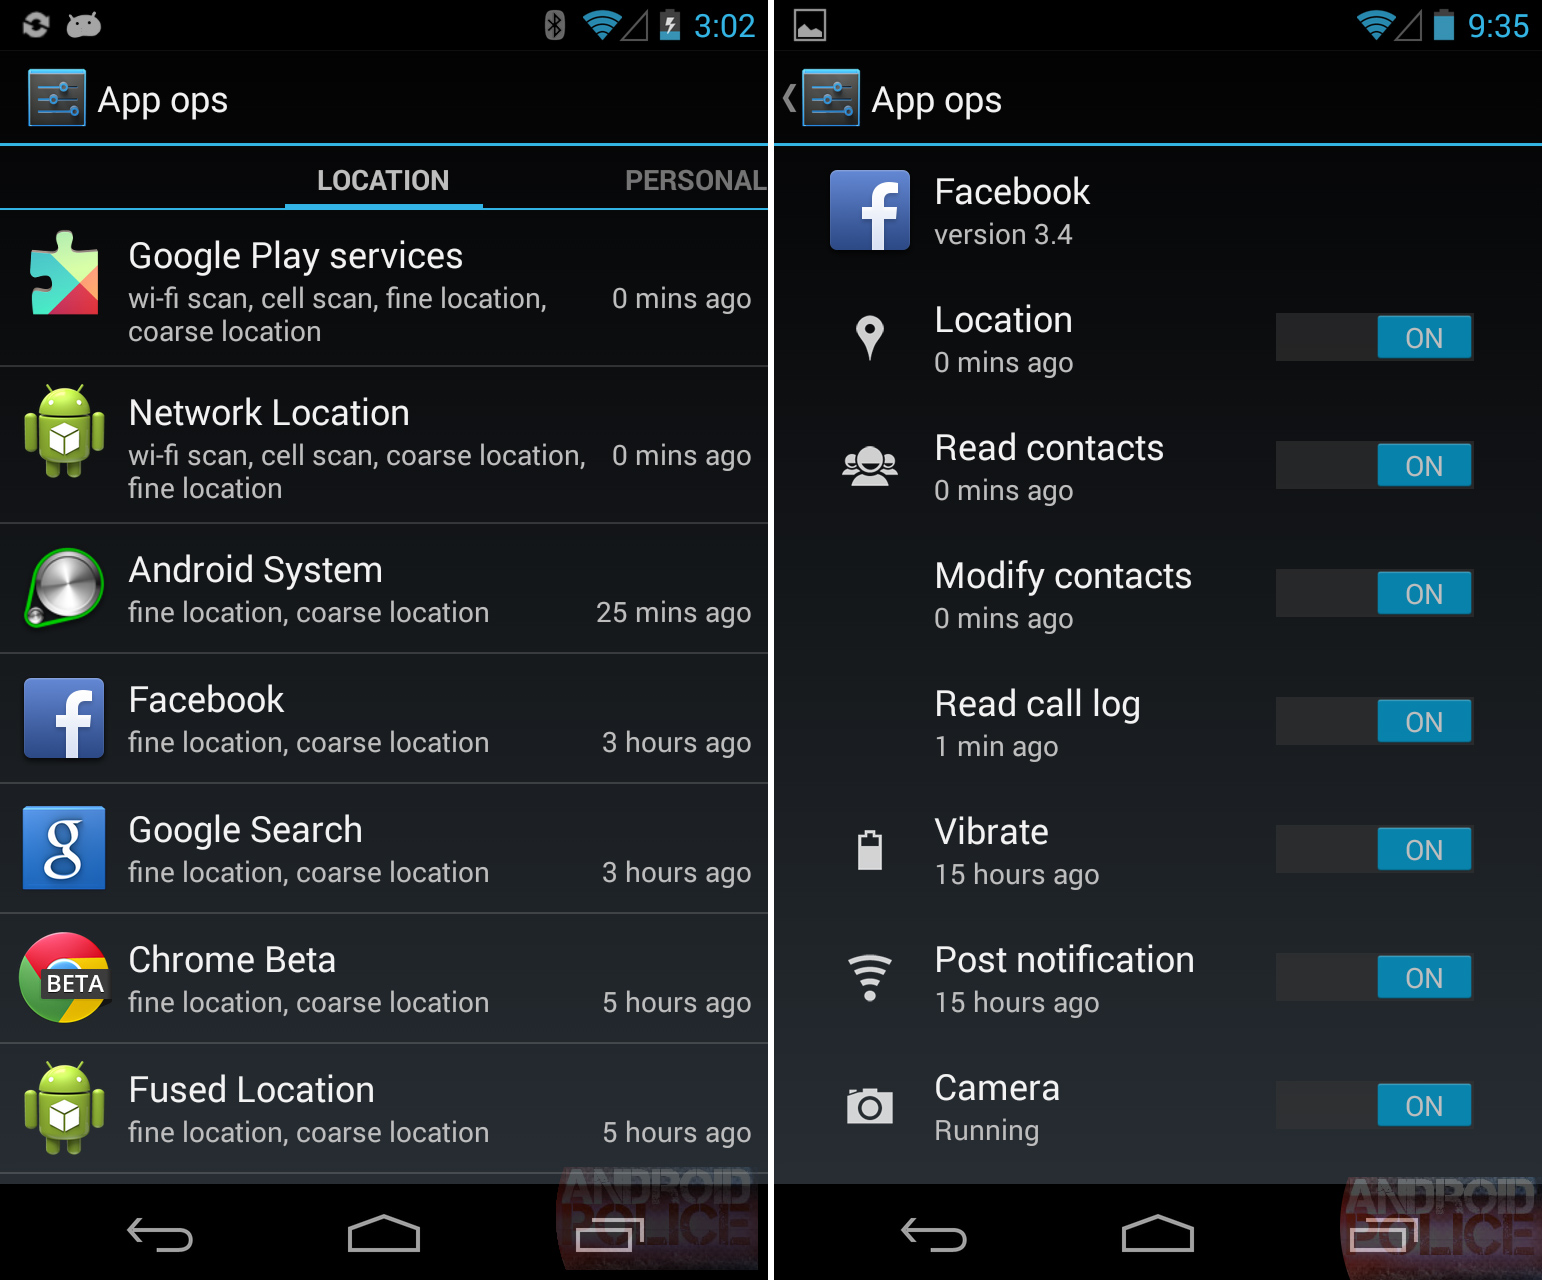 App Ops as it existed in Android 4.3.